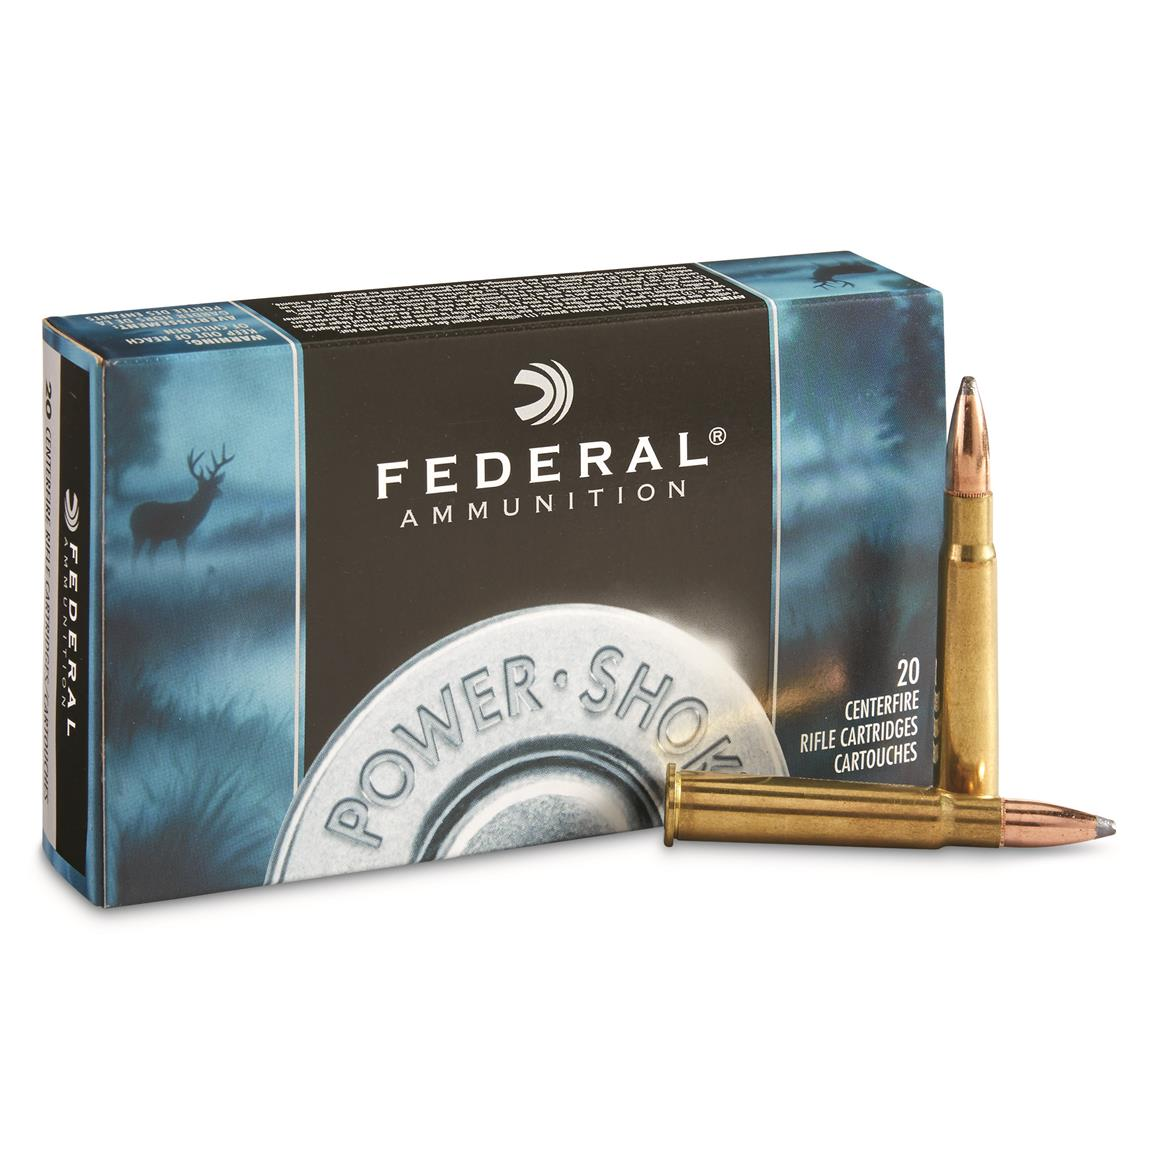 Federal Power-Shok, .303 British, SHCSP, 180 Grain, 20 Rounds